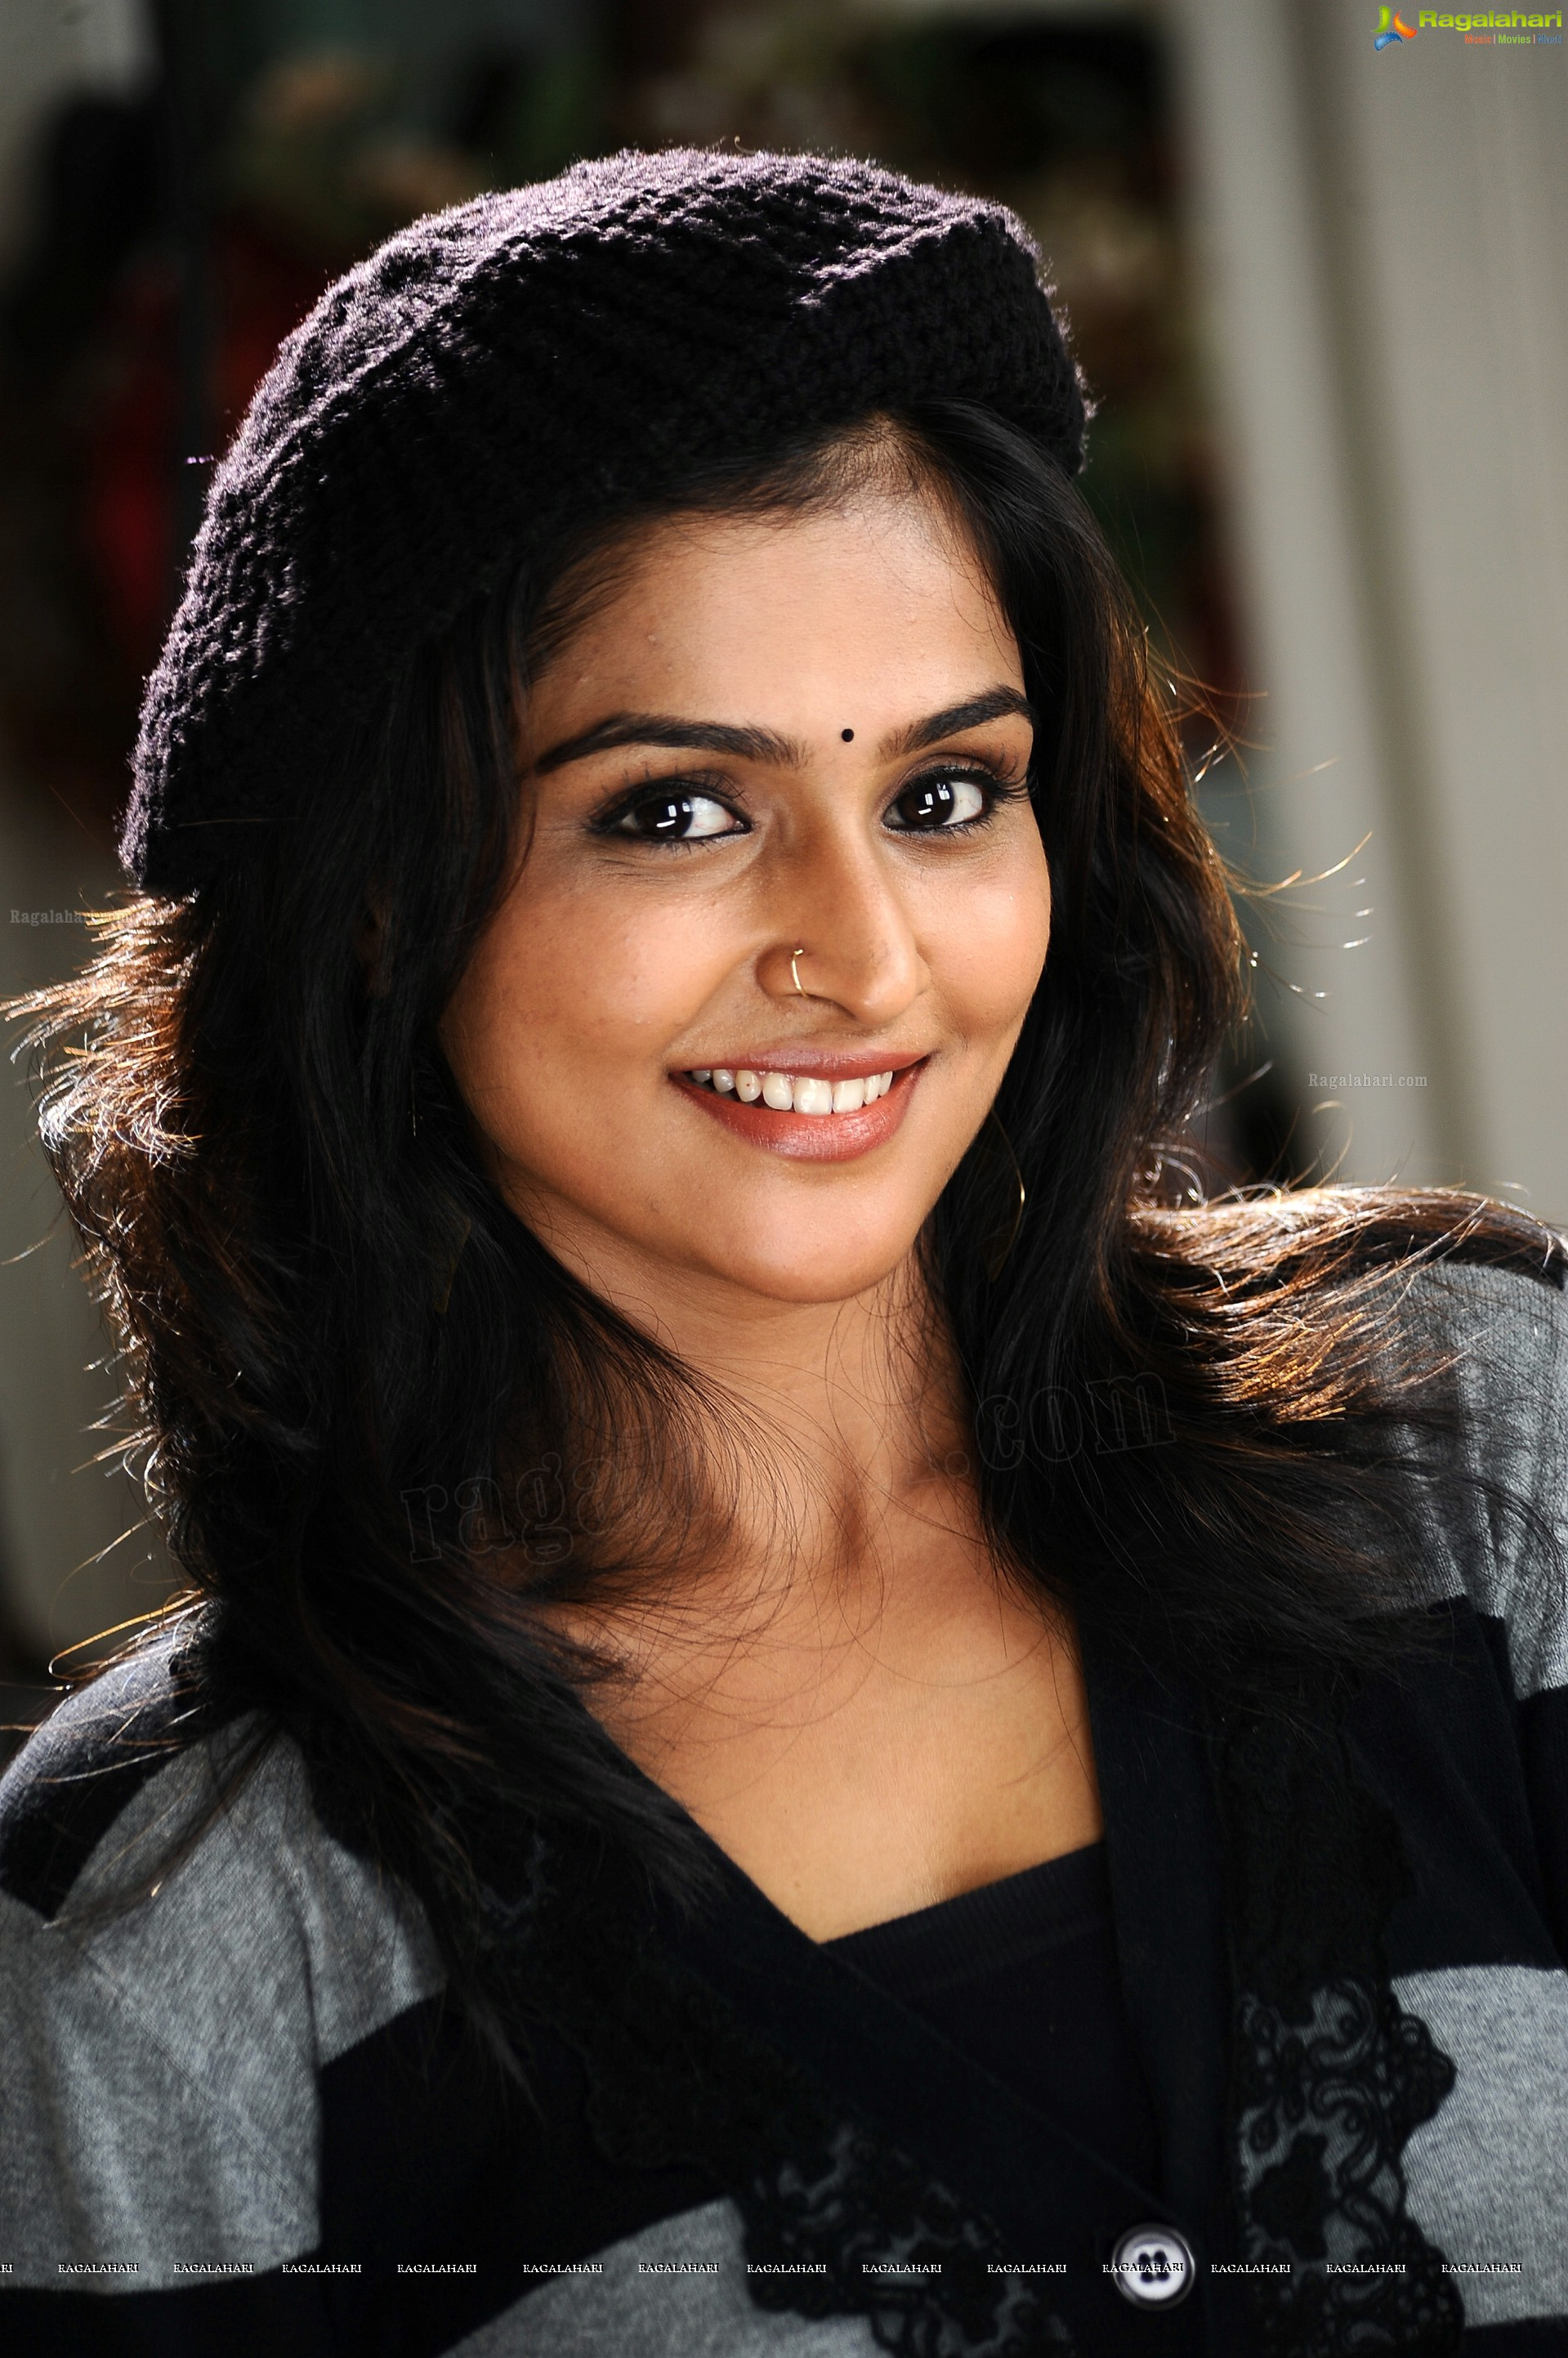 remya nambeesan (hd) image 61 | telugu actress photo gallery,images